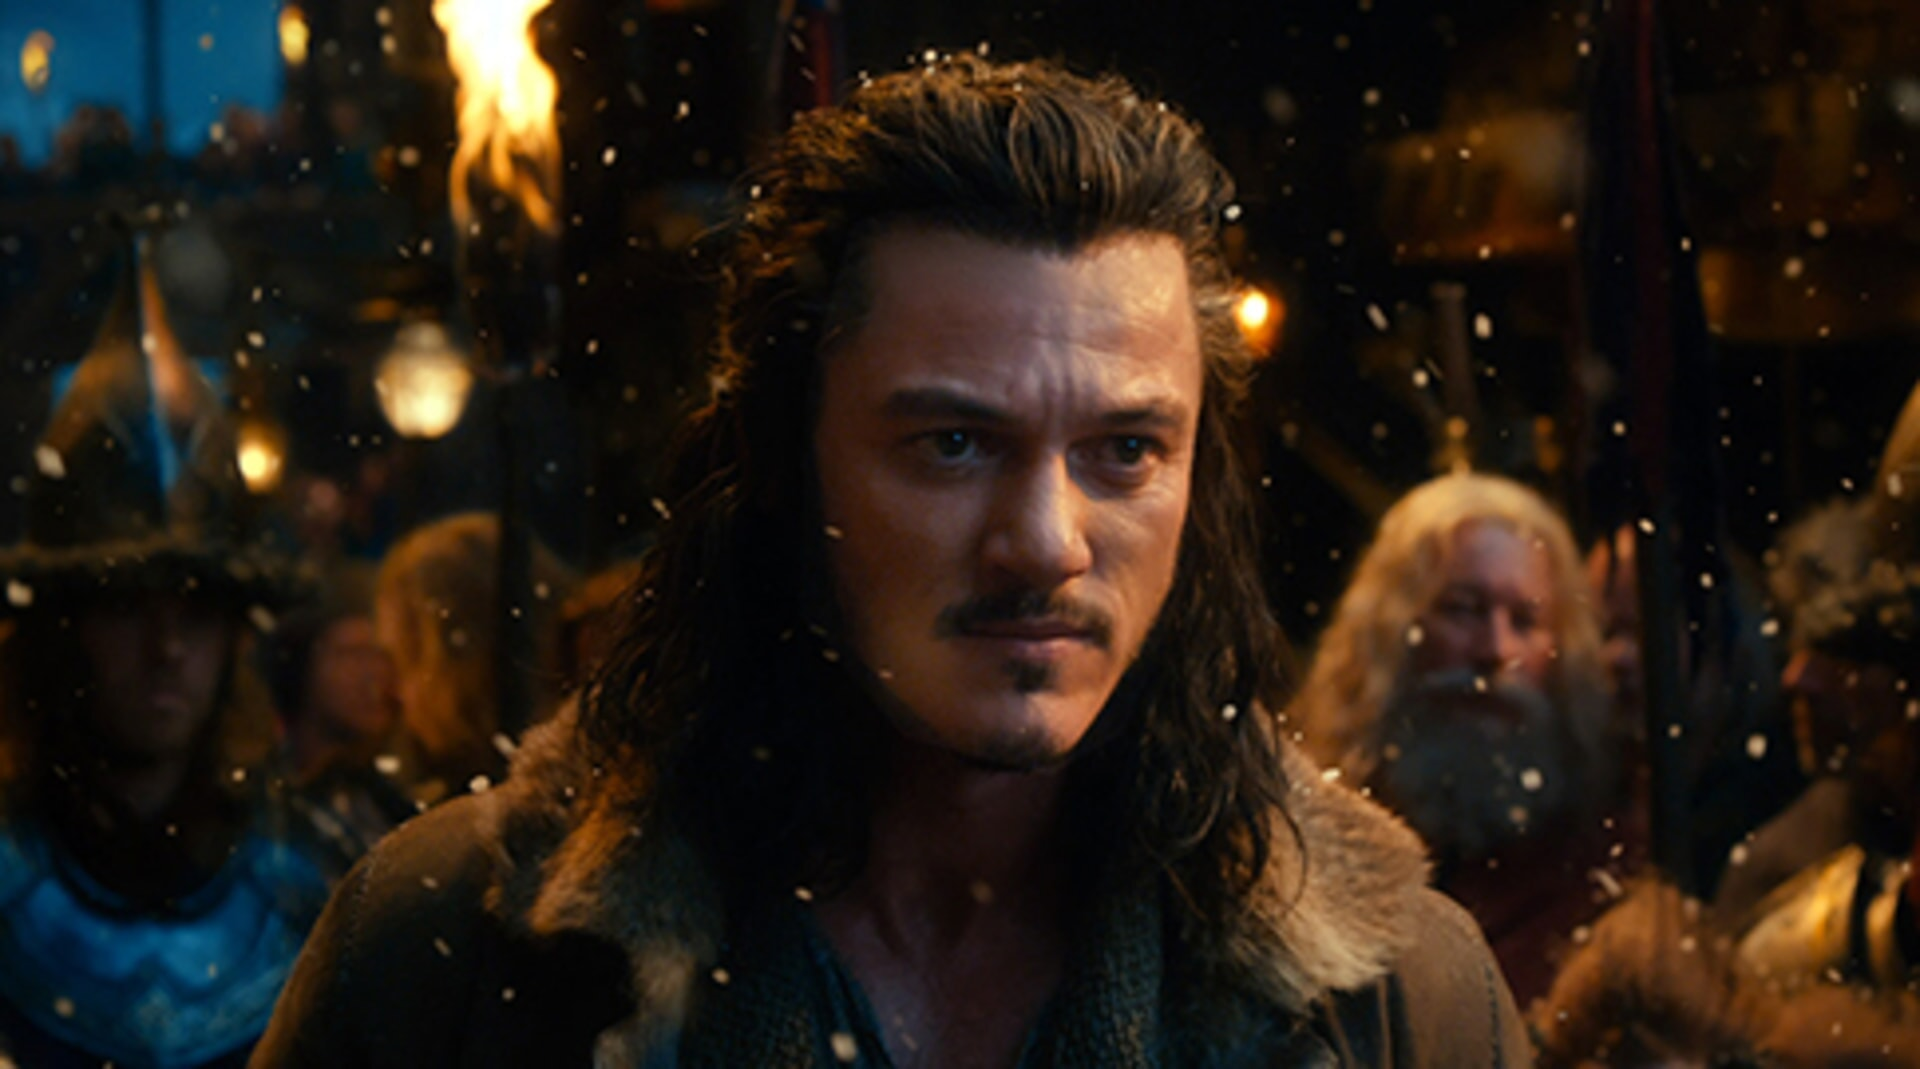 The Hobbit: The Desolation of Smaug - Image 5